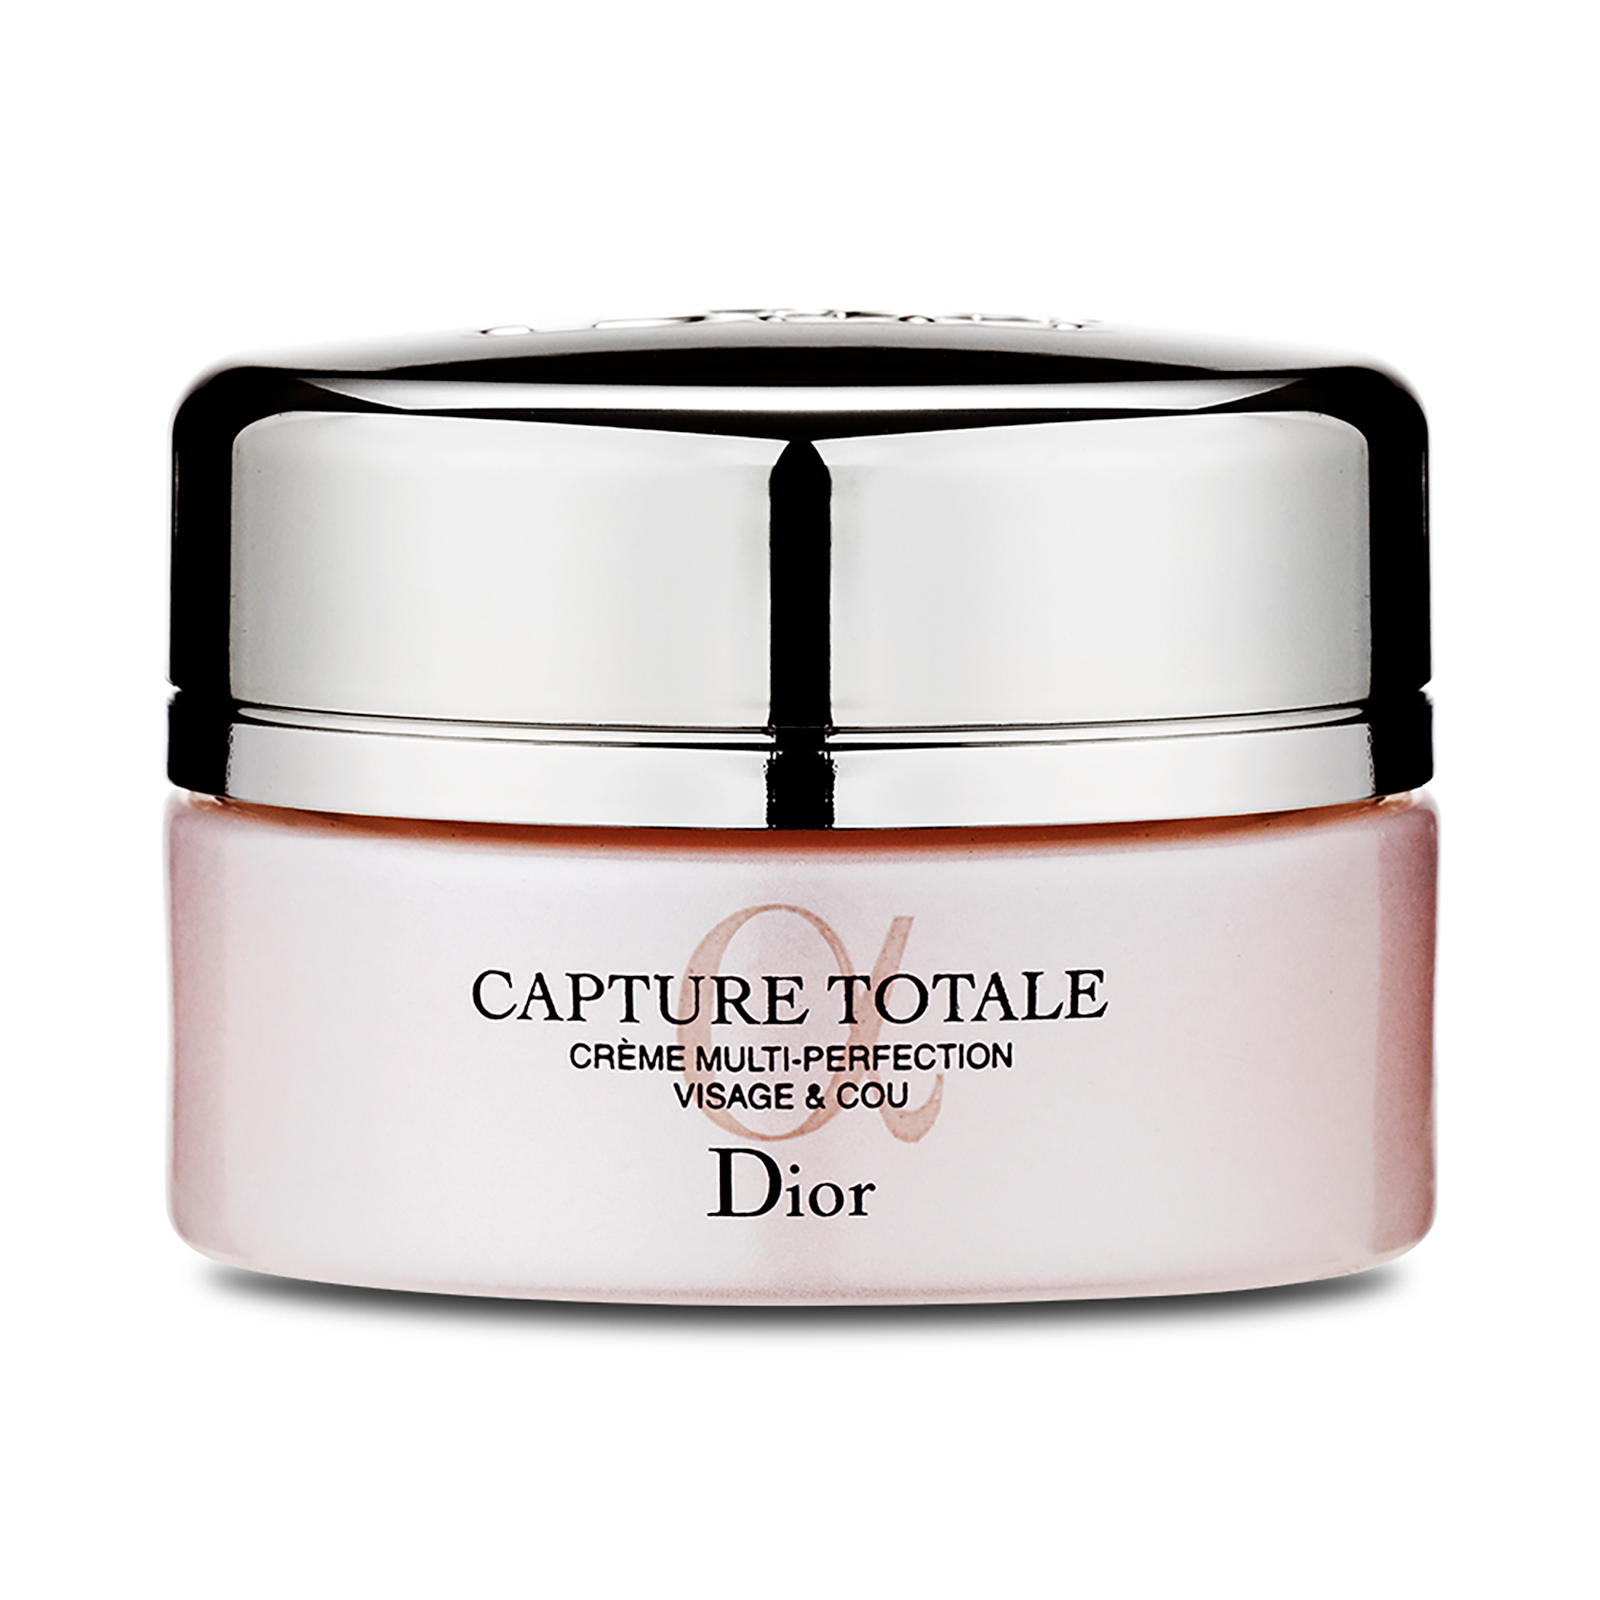 Christian Dior Capture Totale Multi-Perfection Crème (Normal to Combination Skin) 0.52oz, 15ml (sample/ 試用裝)